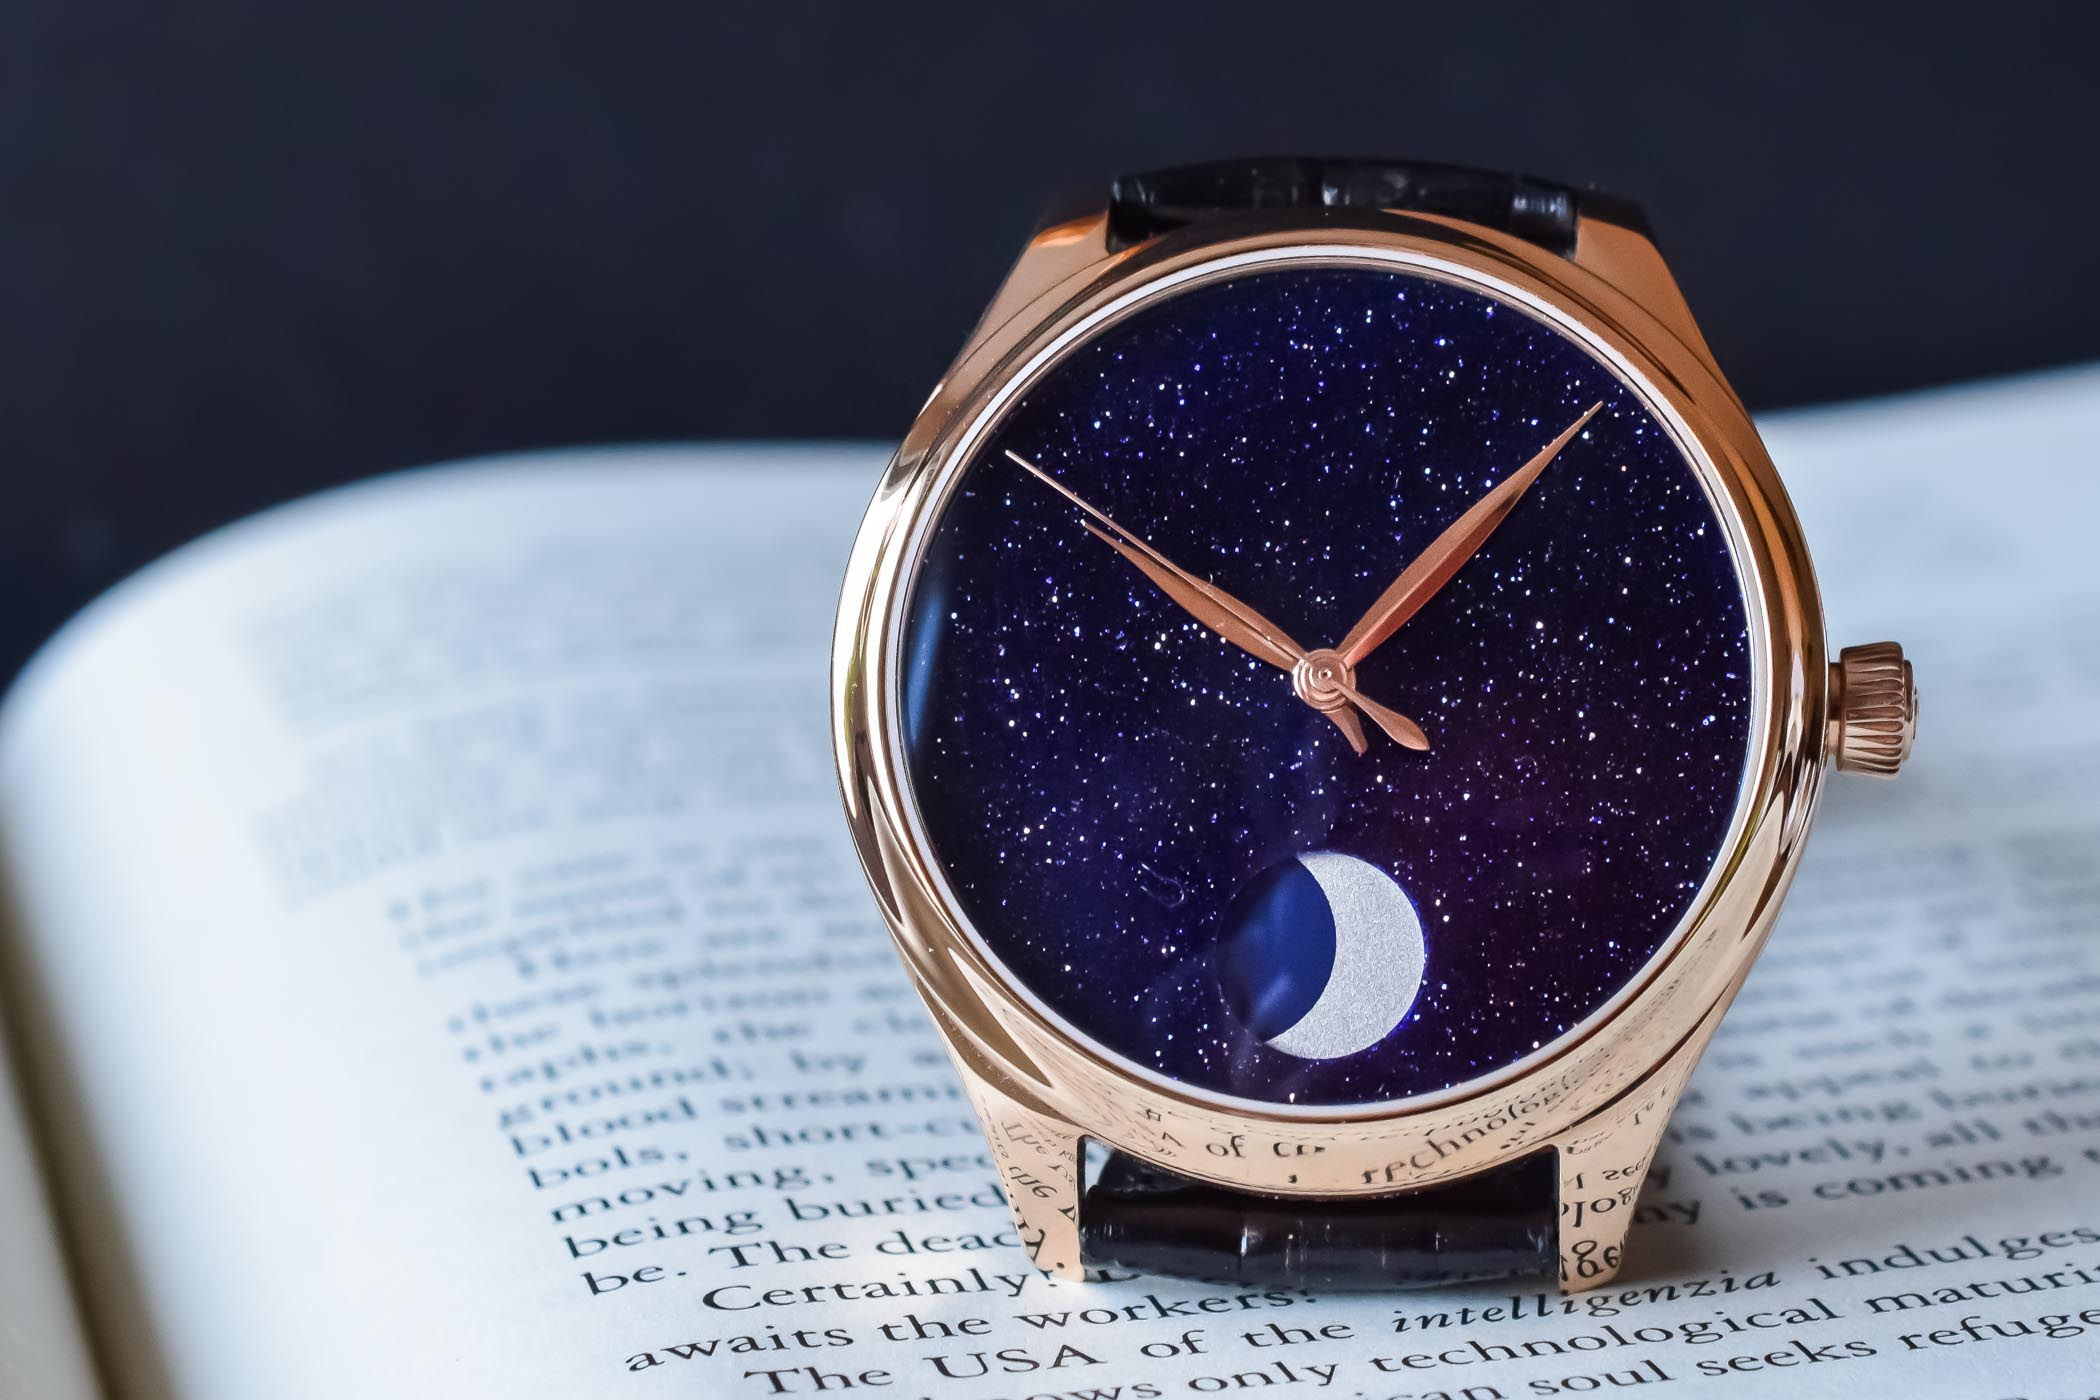 H. Moser Cie Endeavour Perpetual Moon Concept Aventurine - Hands-On - 10